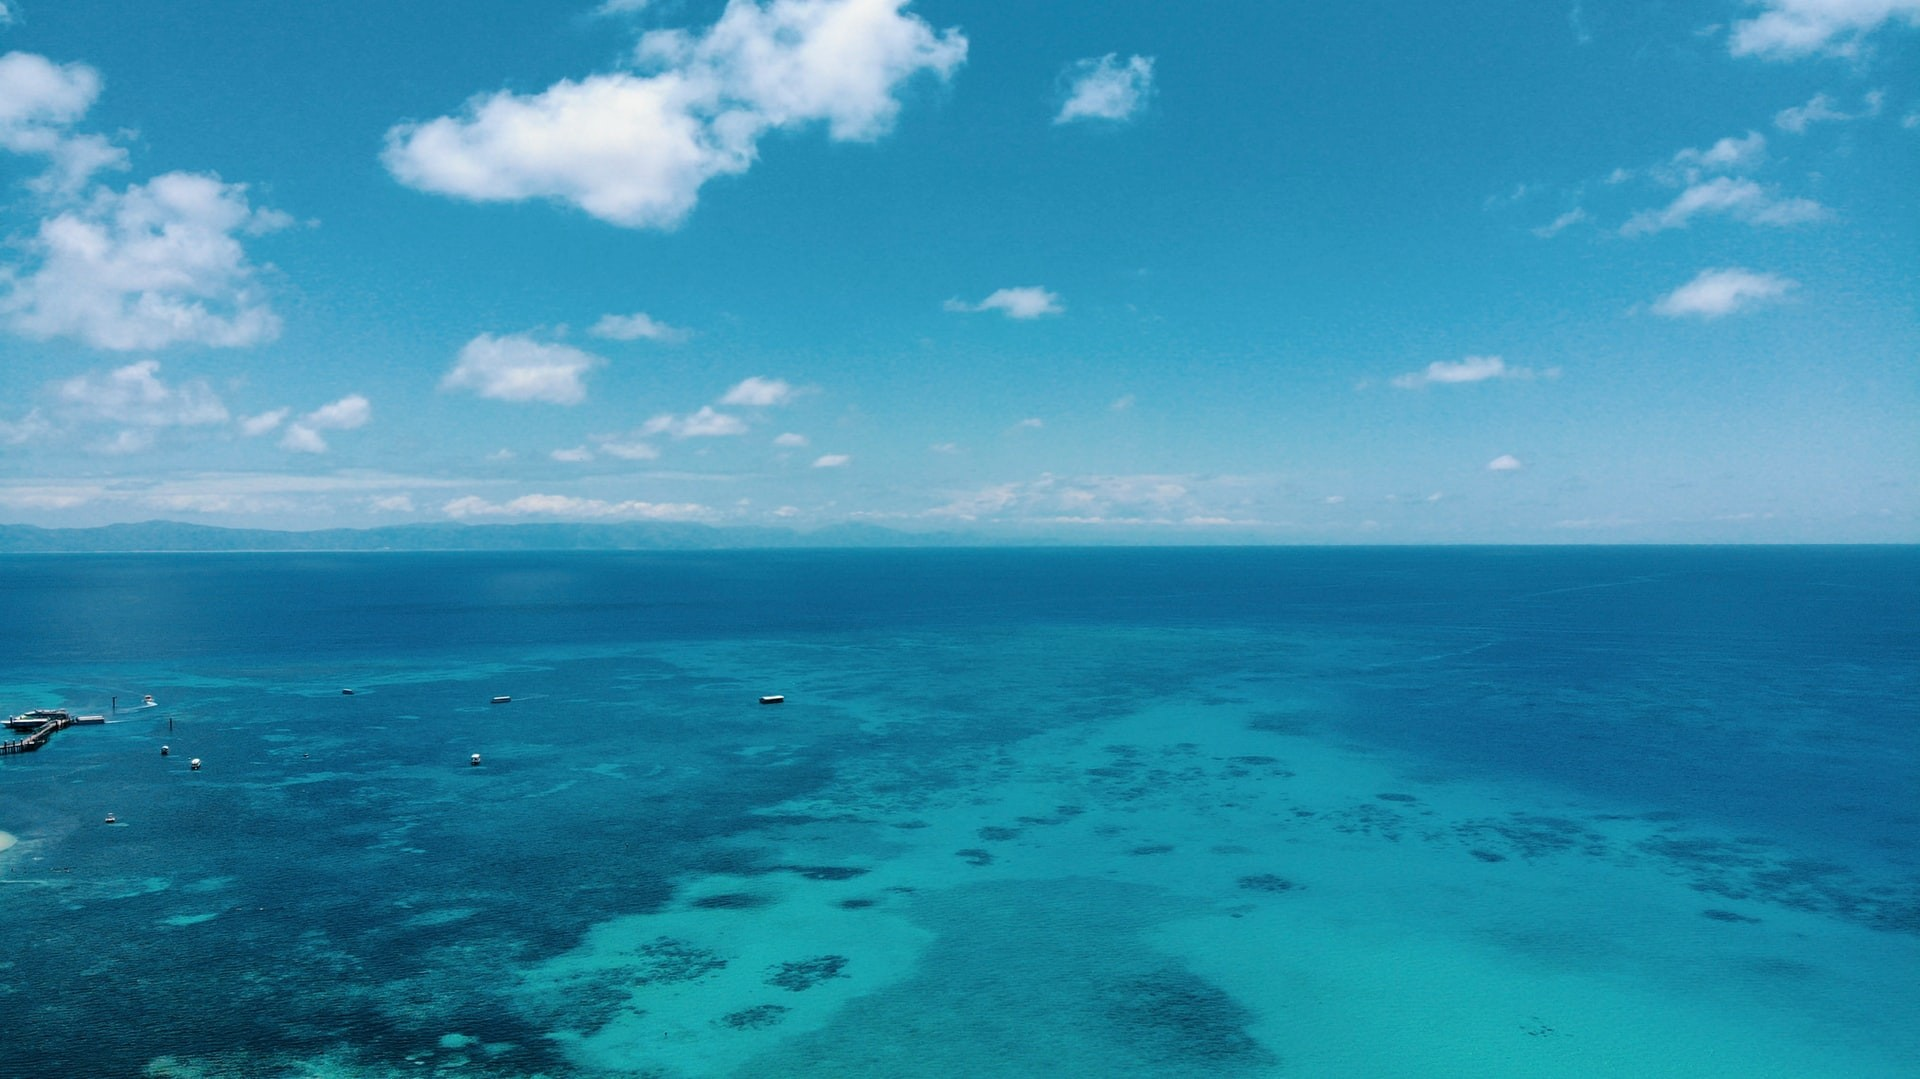 The Great Barrier Reef in Australia, perfect for virtual tours.